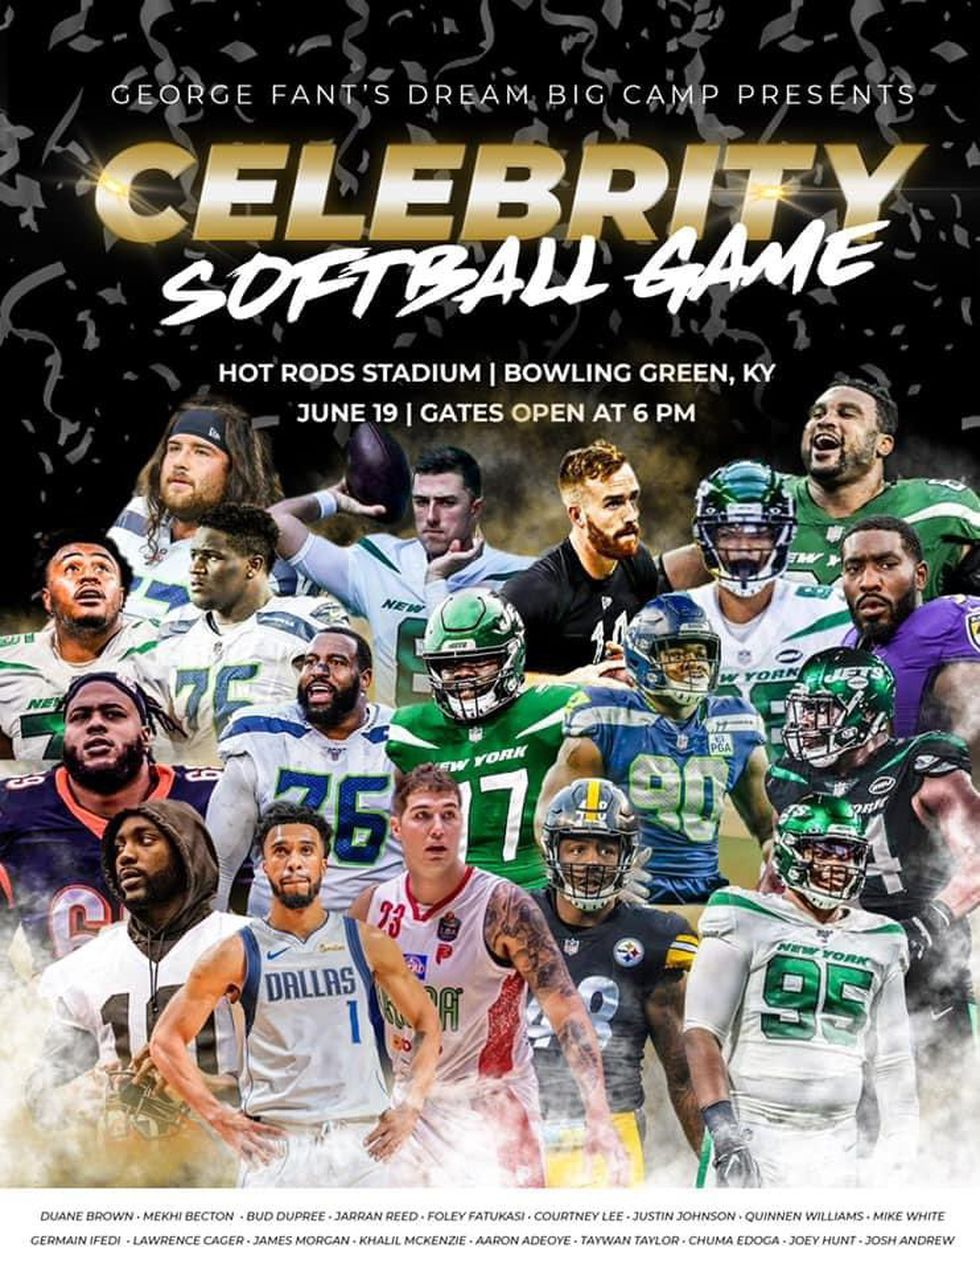 tickets-on-sale-for-george-fant's-celebrity-softball-game.